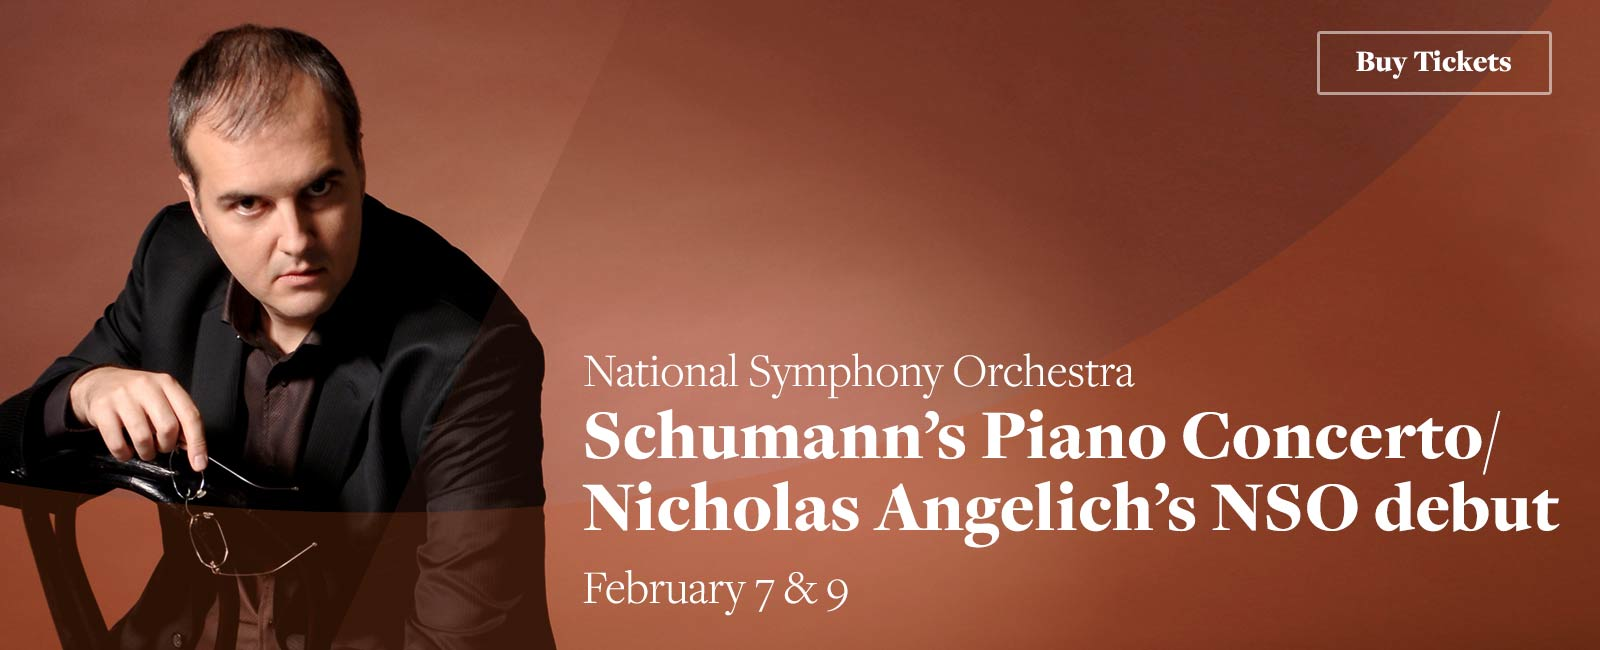 Schumann's Piano Concerto / Noseda conducts Angelich's NSO debut